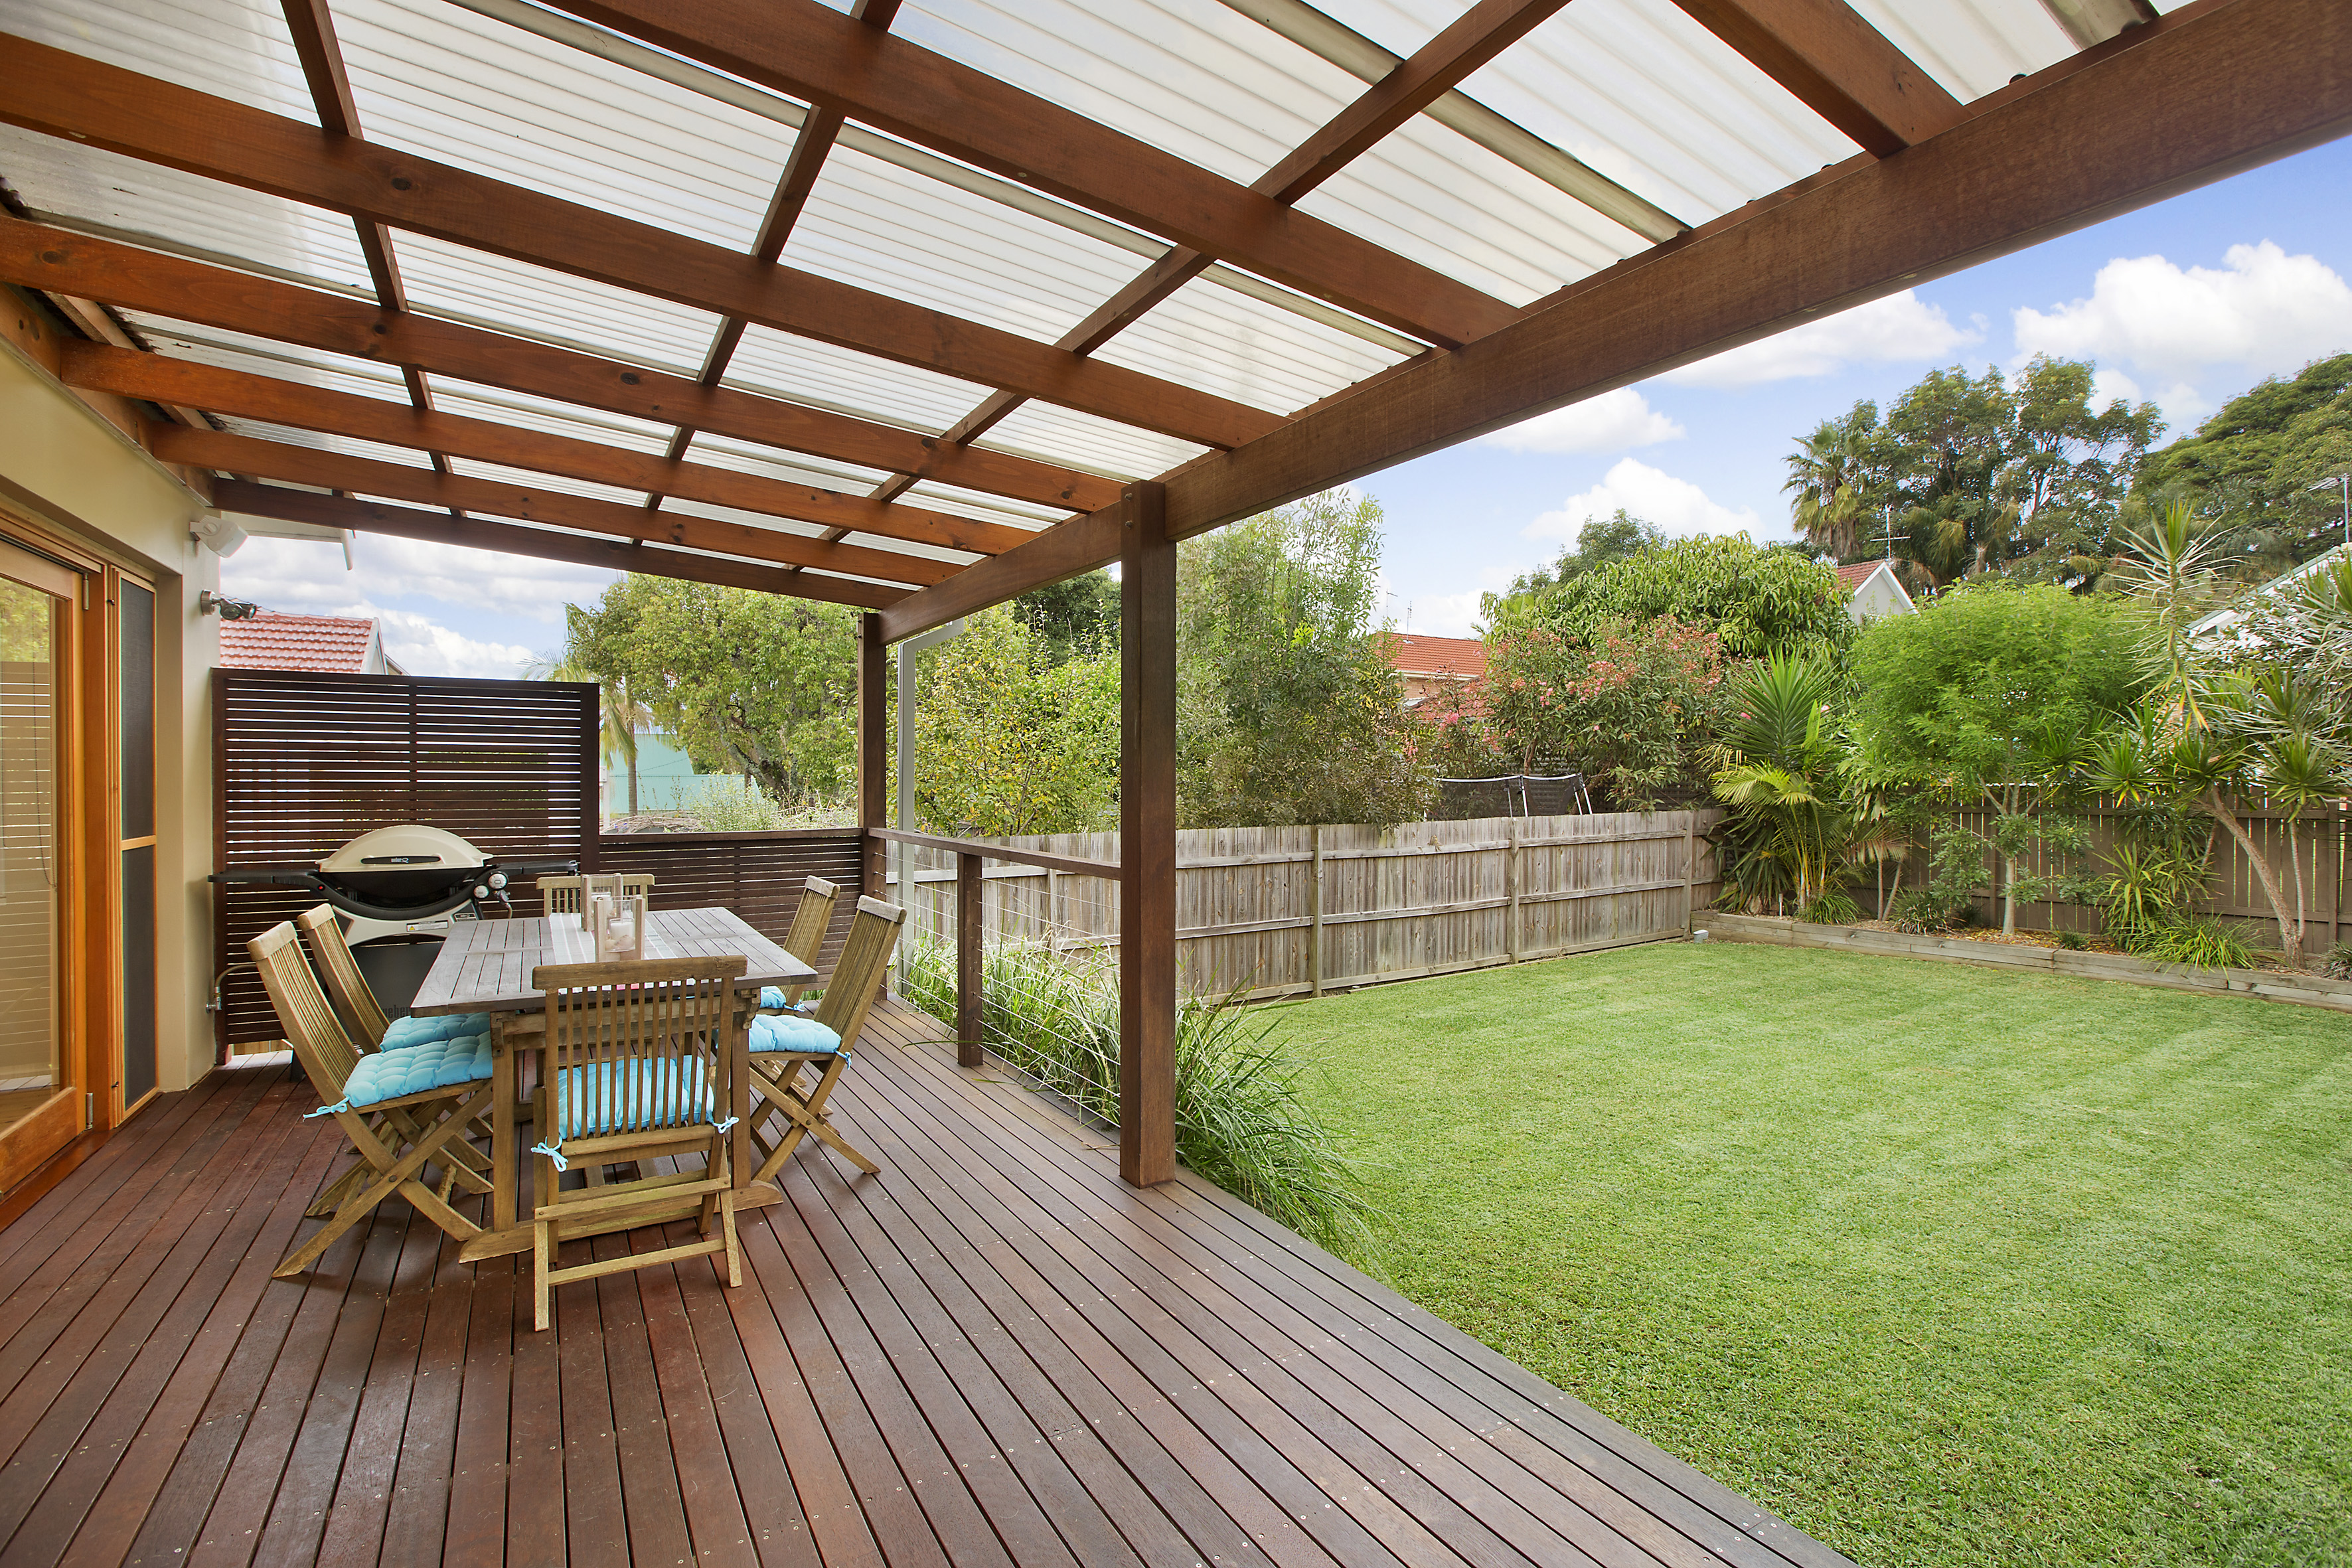 Building a Backyard Deck - Ready in a Week - Ottawa Home ... on Covered Back Deck Ideas id=32587